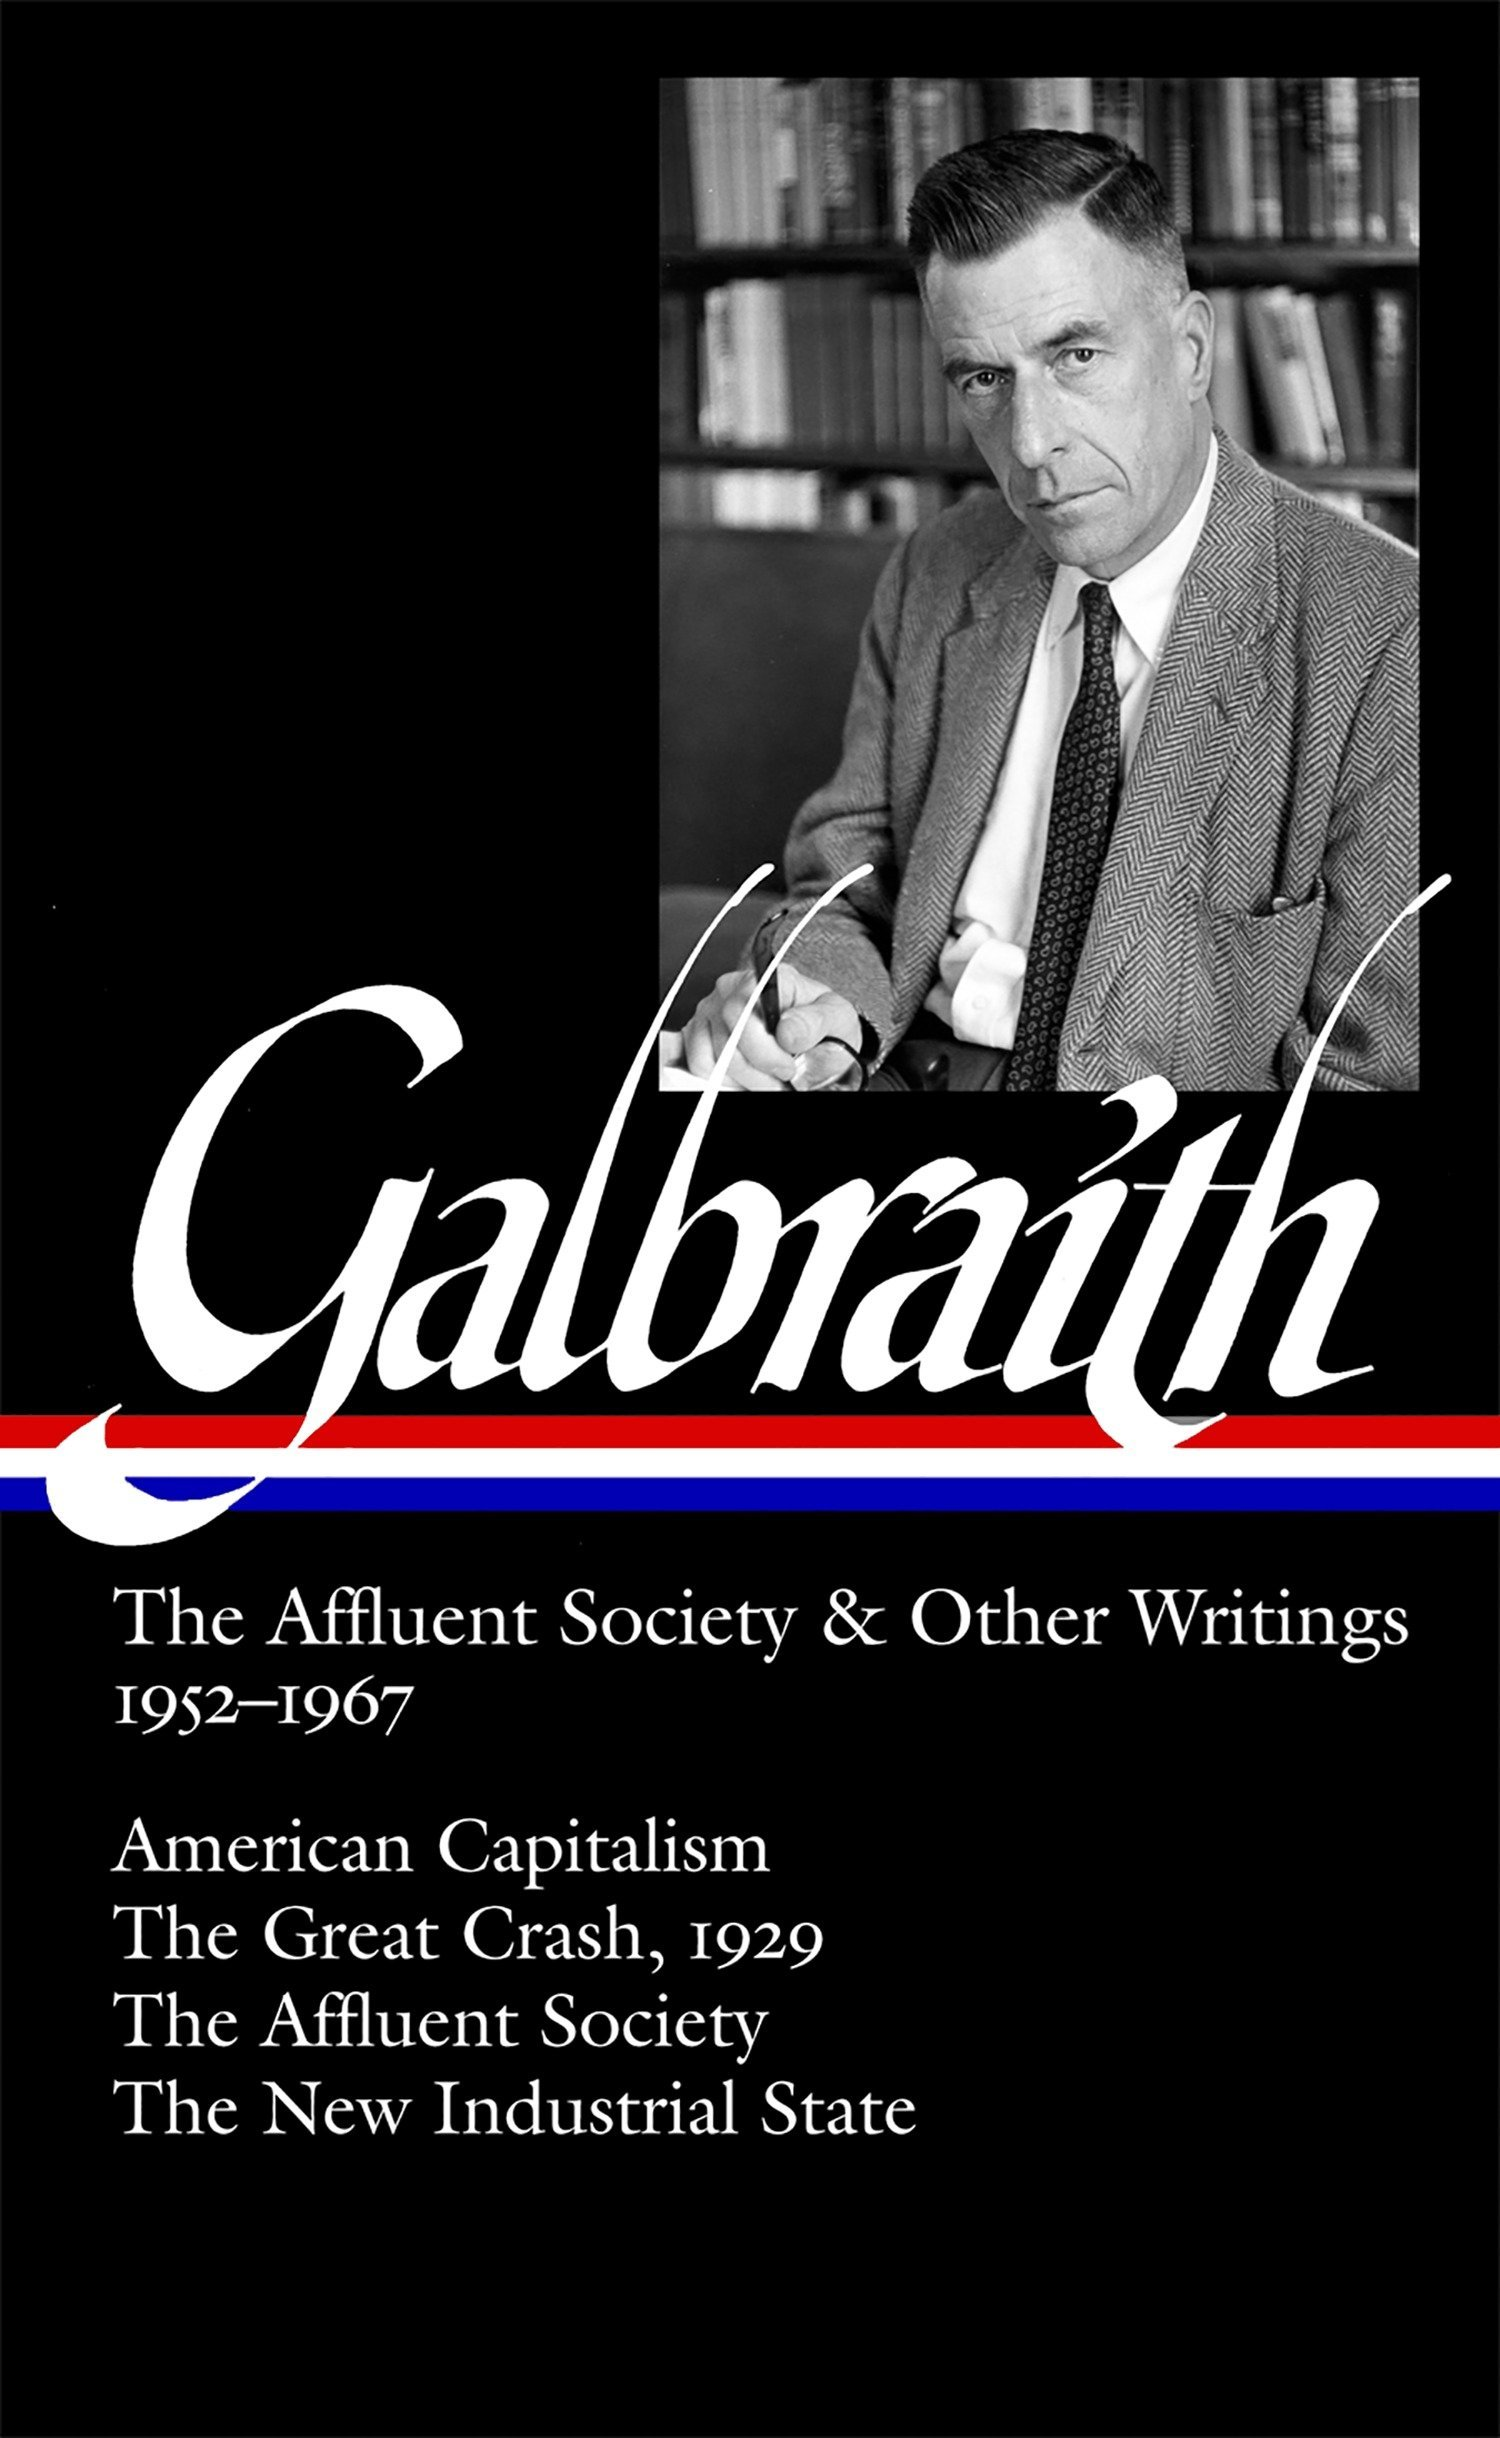 Galbraith: The Affluent Society  &  Other Writings, 1952-1967: American Capitalism / The Great Crash, 1929 / The Affluent Society / The New Industrial State pdf